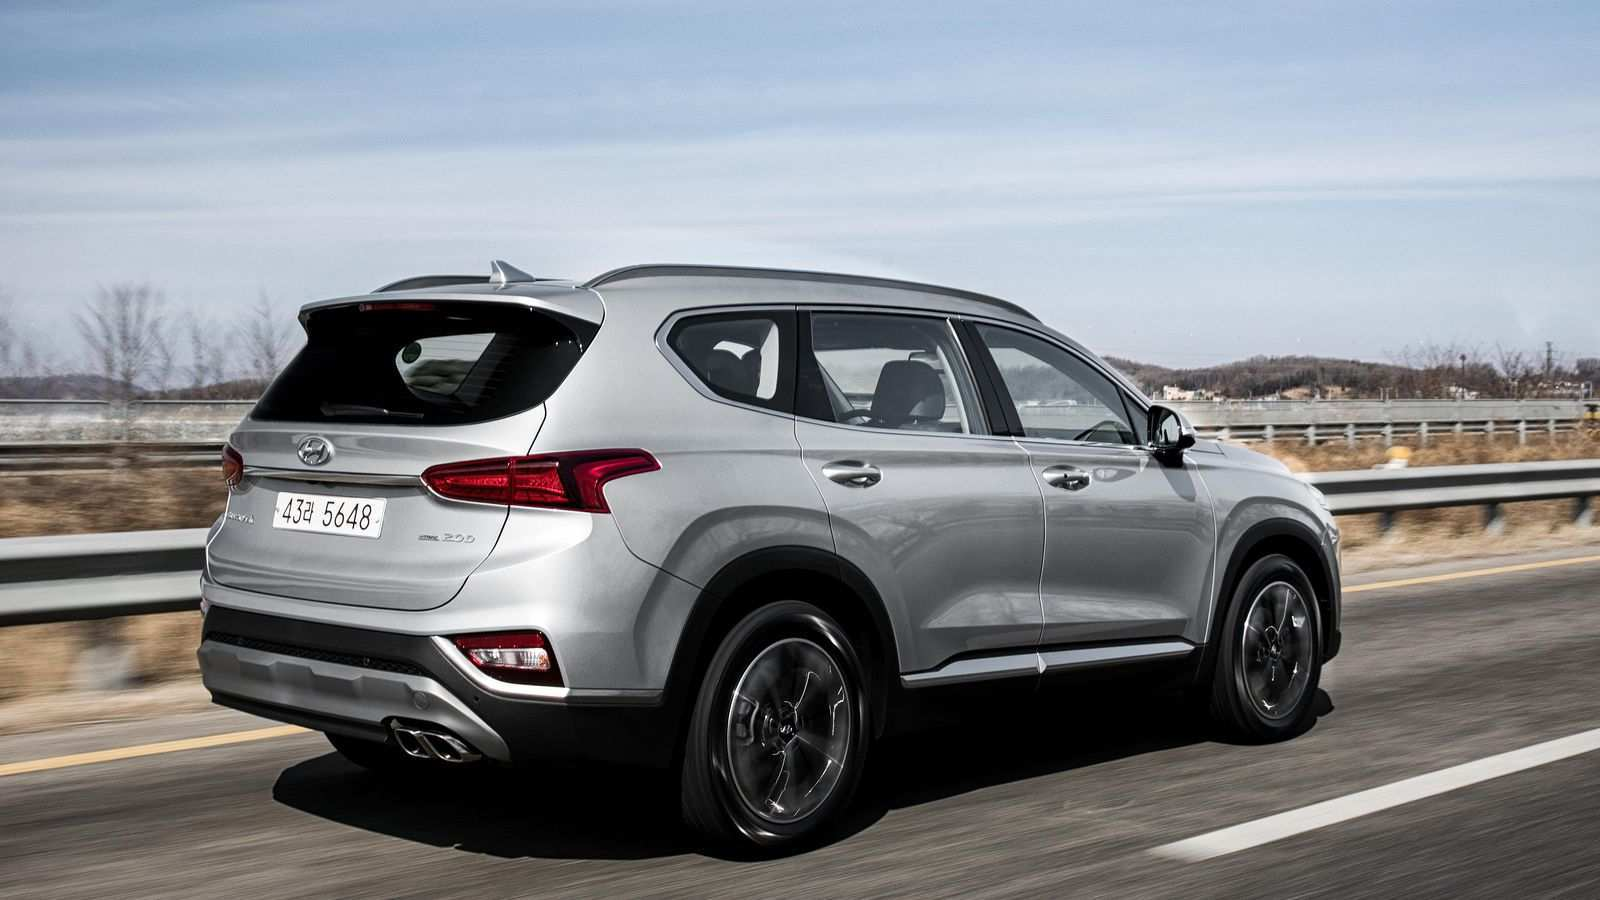 46 New 2019 Hyundai Santa Fe Rumors